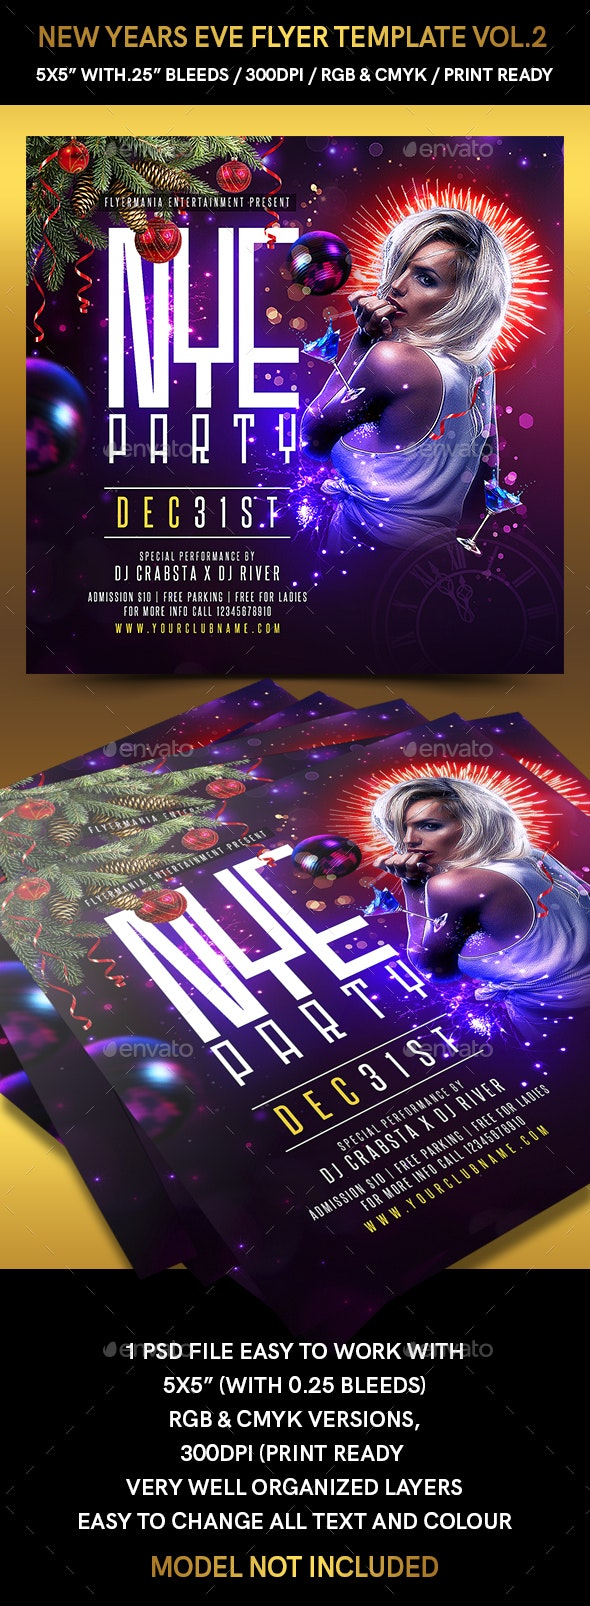 New Years Eve Flyer Template Vol.2 - Flyers Print Templates